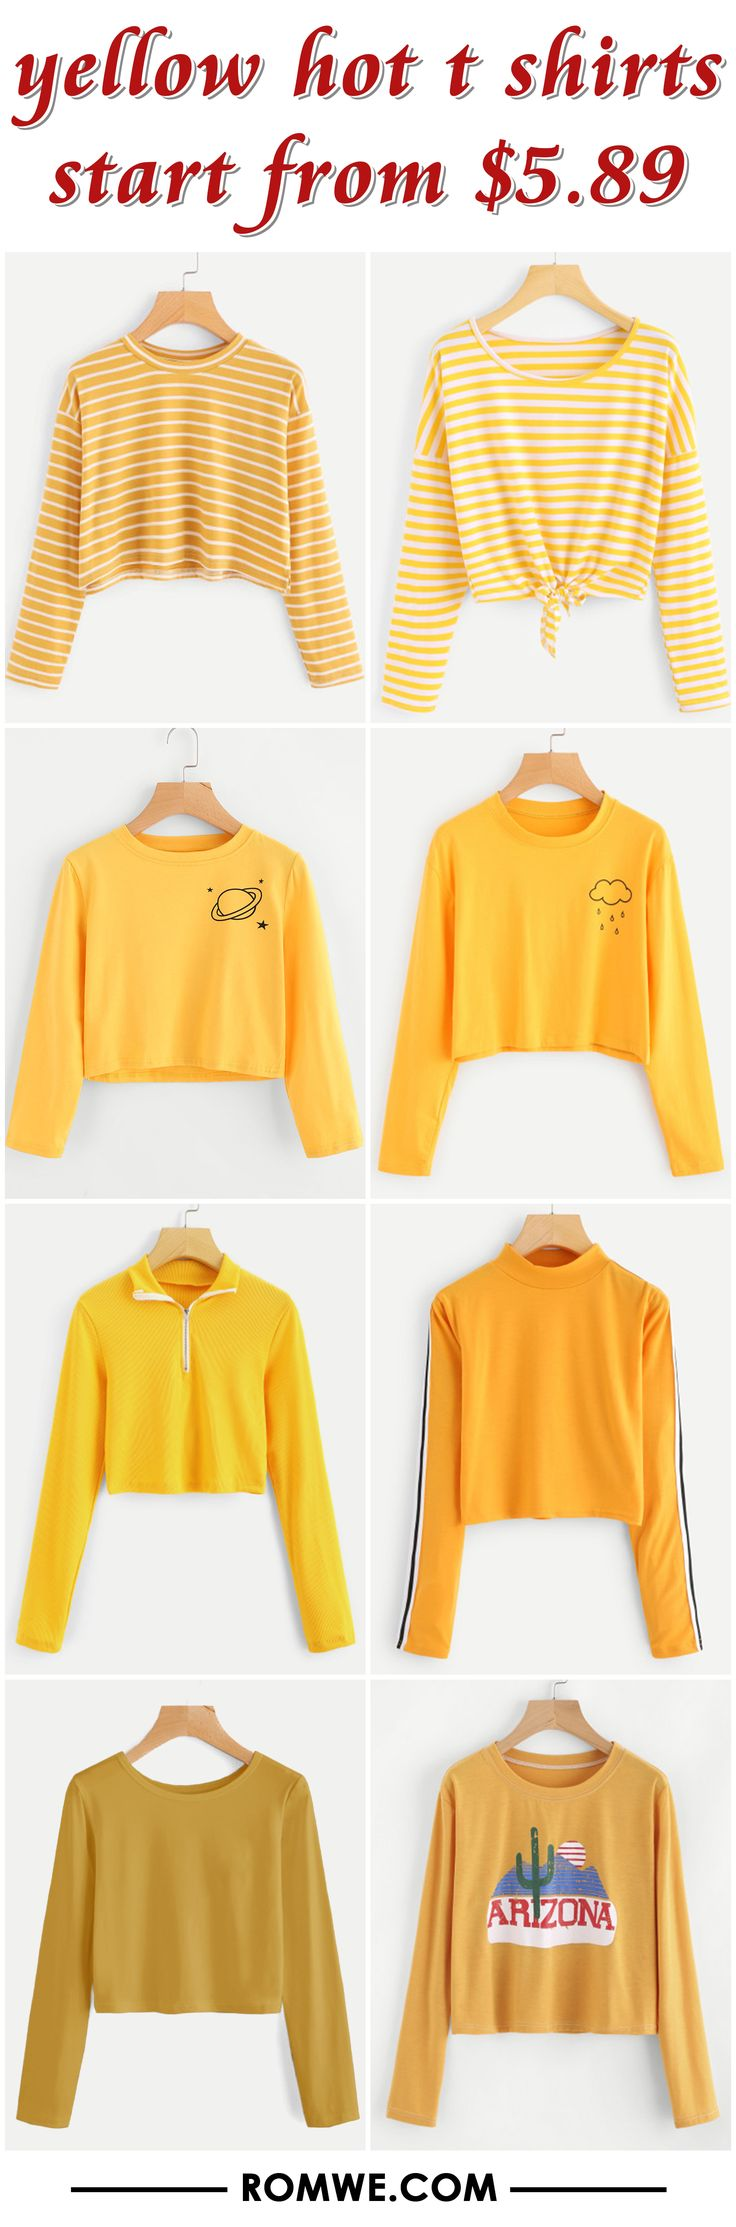 yellow hot t shirts from $5.89